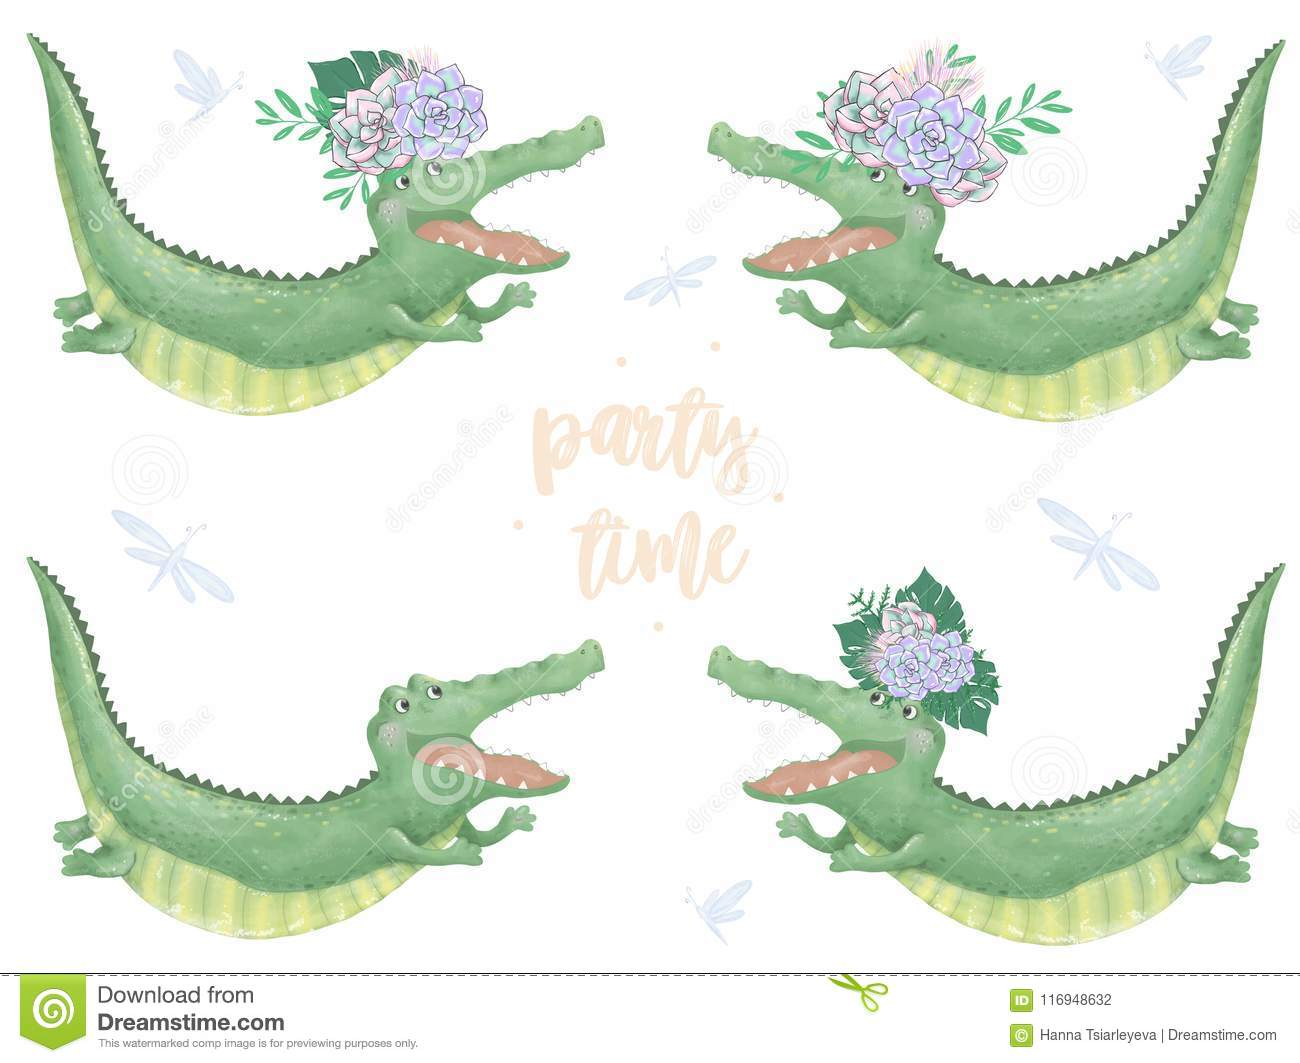 Crocodile Digital Clip Art Cute Animal And Flowers Flying Croc Party Time Text